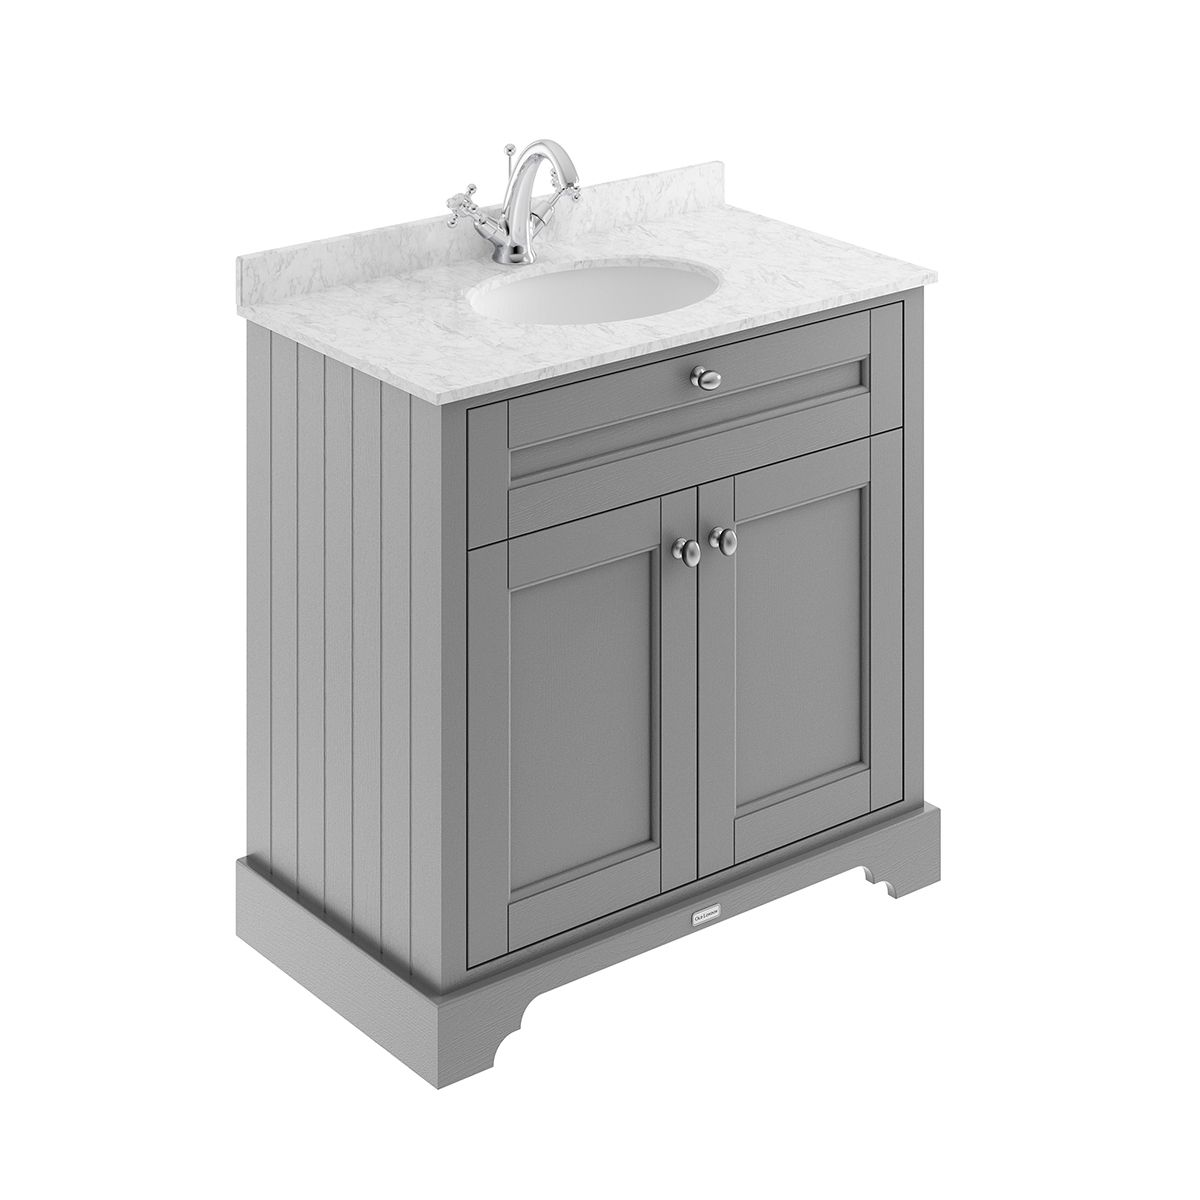 Old London Storm Grey Vanity Unit with Marble Top 800mm